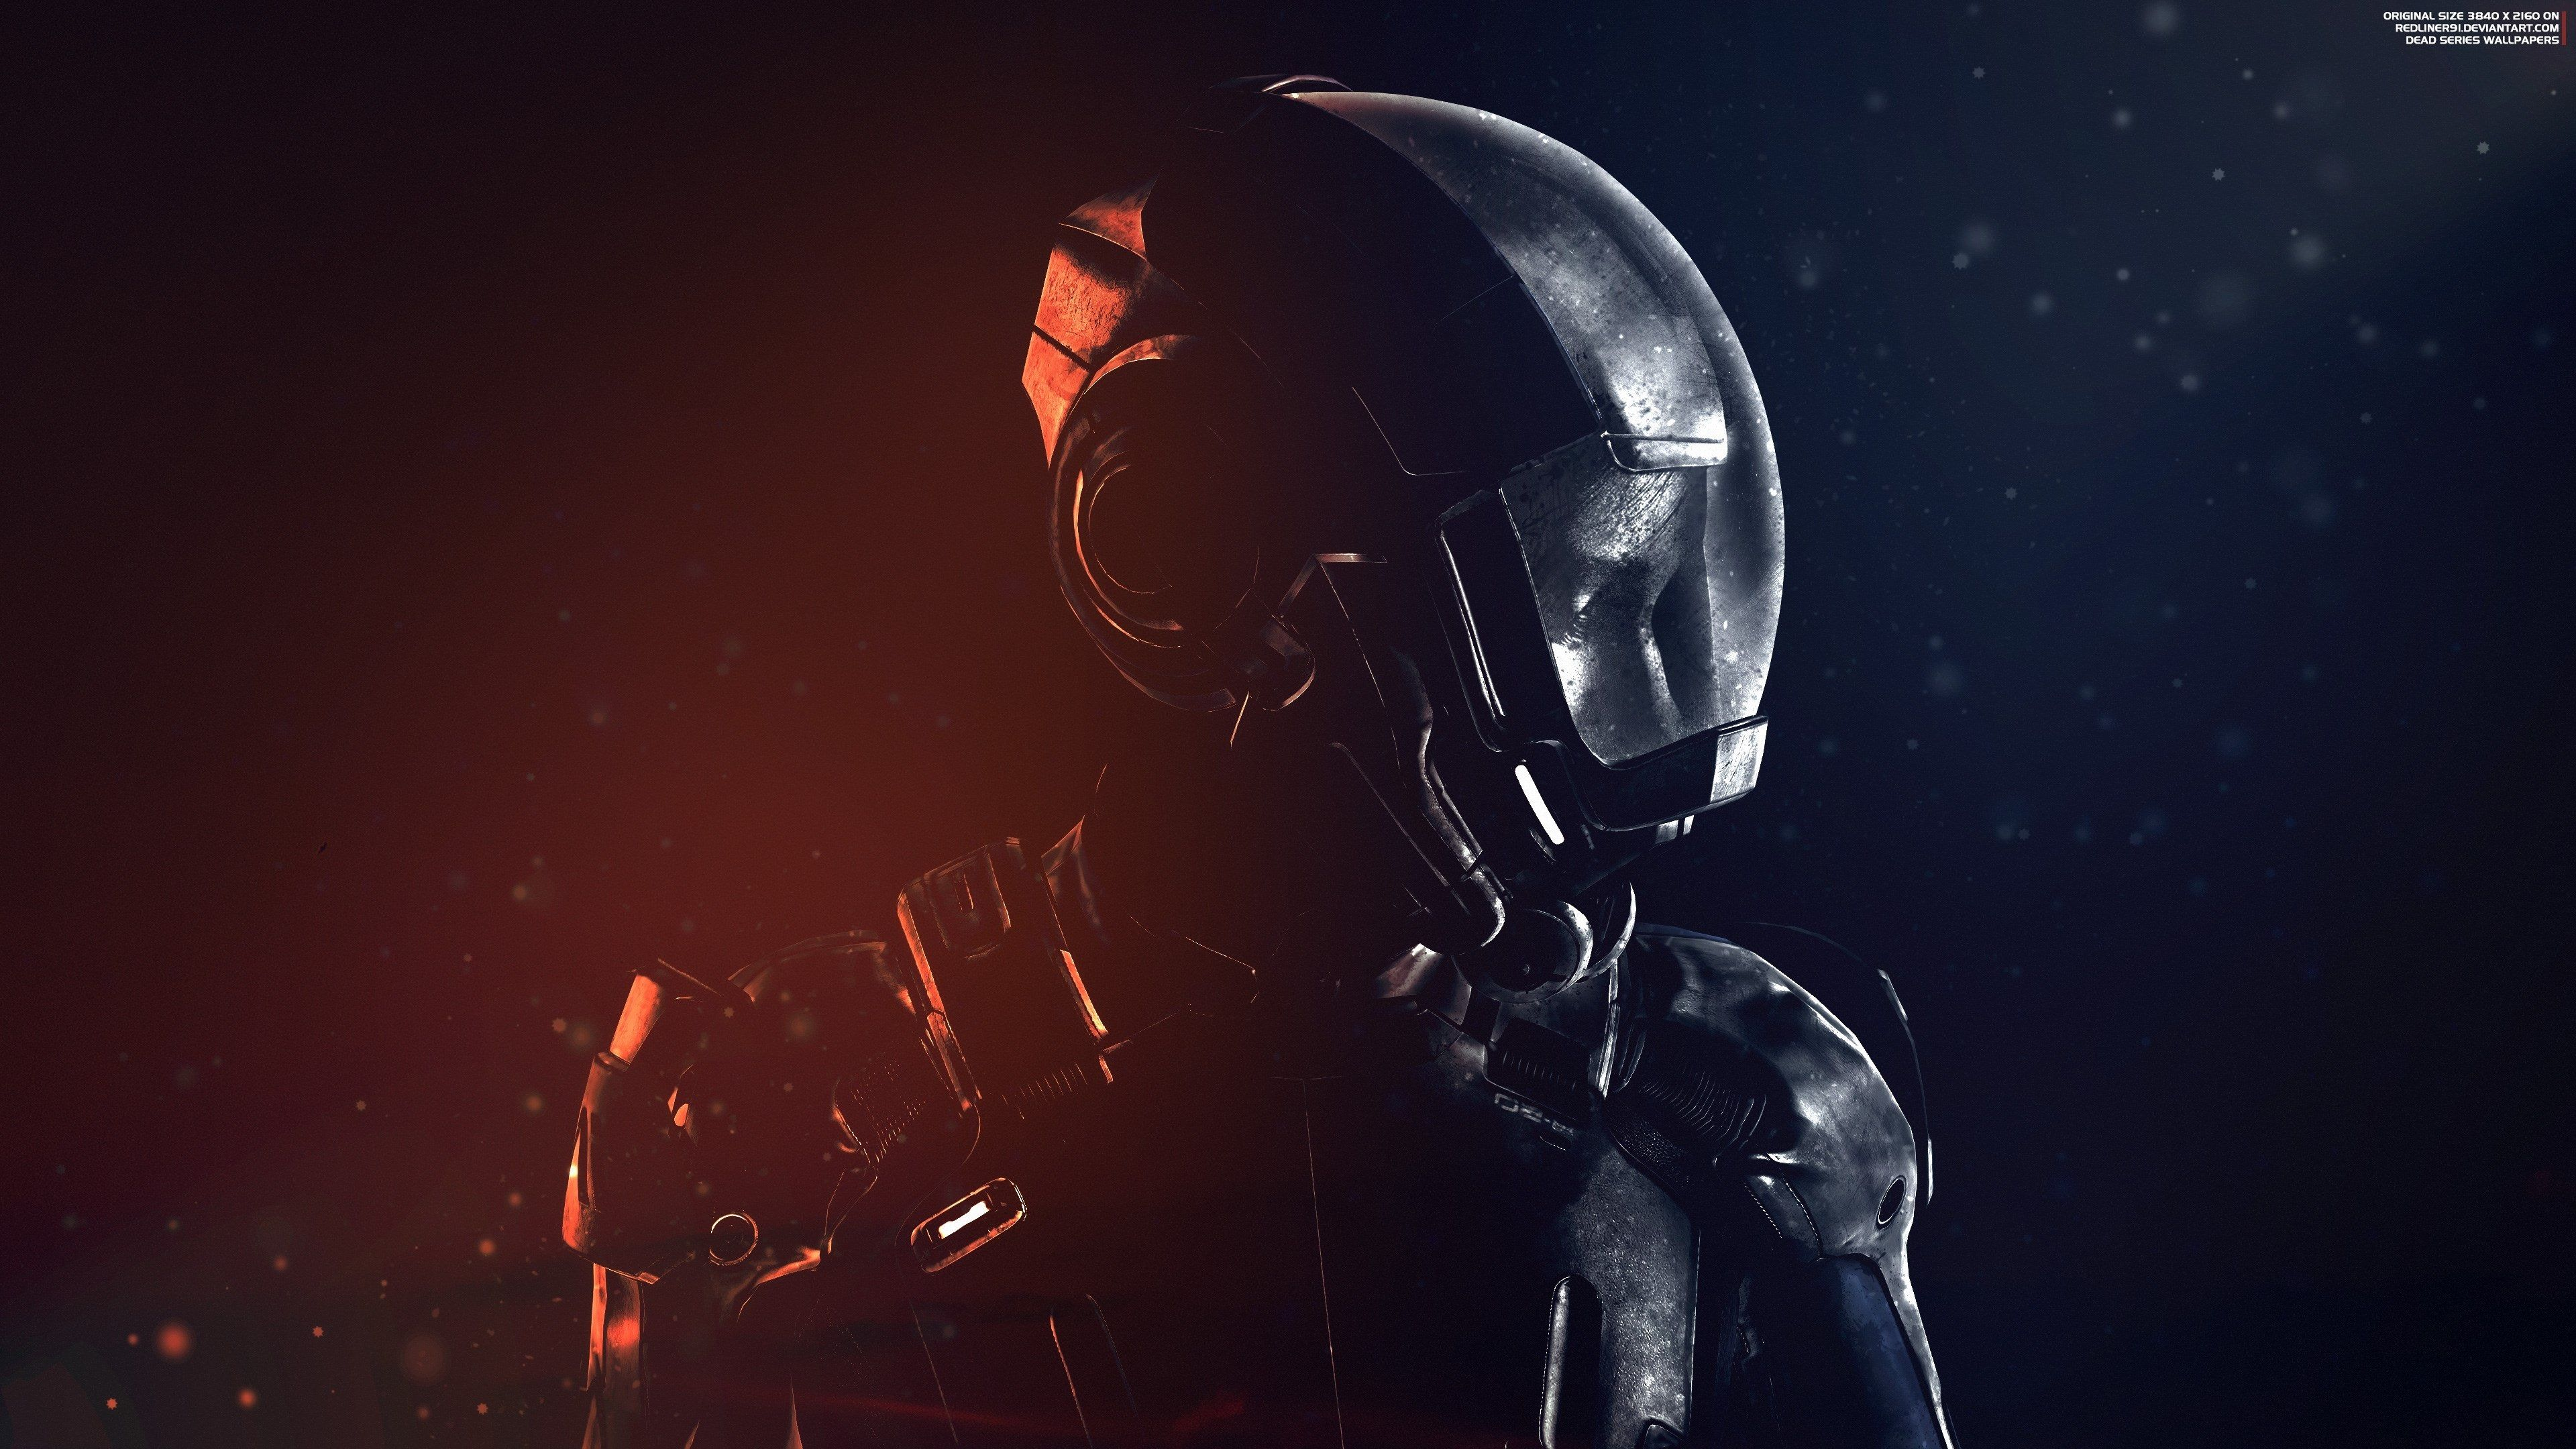 3840x2160 Mass Effect Andromeda 4k Wallpaper For Desktop Computer Mass Effect Sara Ryder Mass Effect Andromeda Ps4